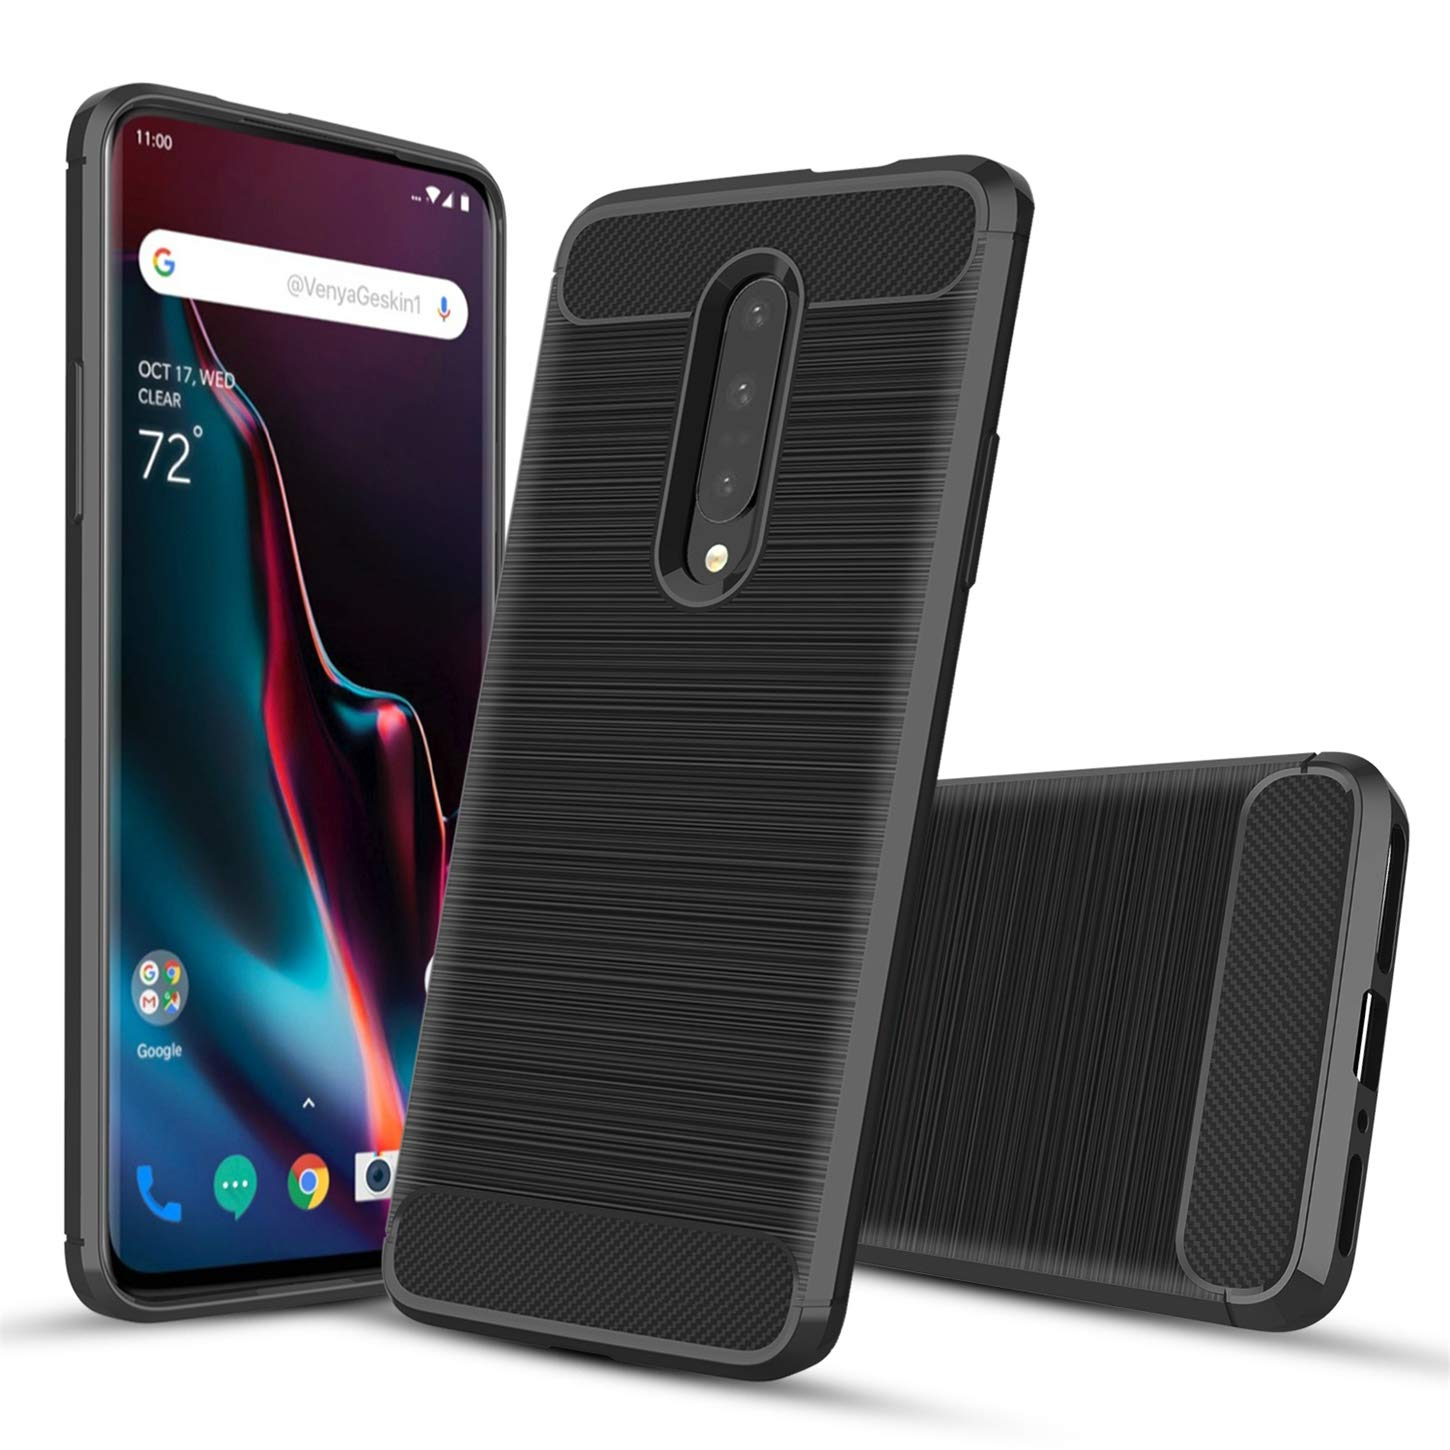 Soft Flexible case for OnePlus 7 Pro